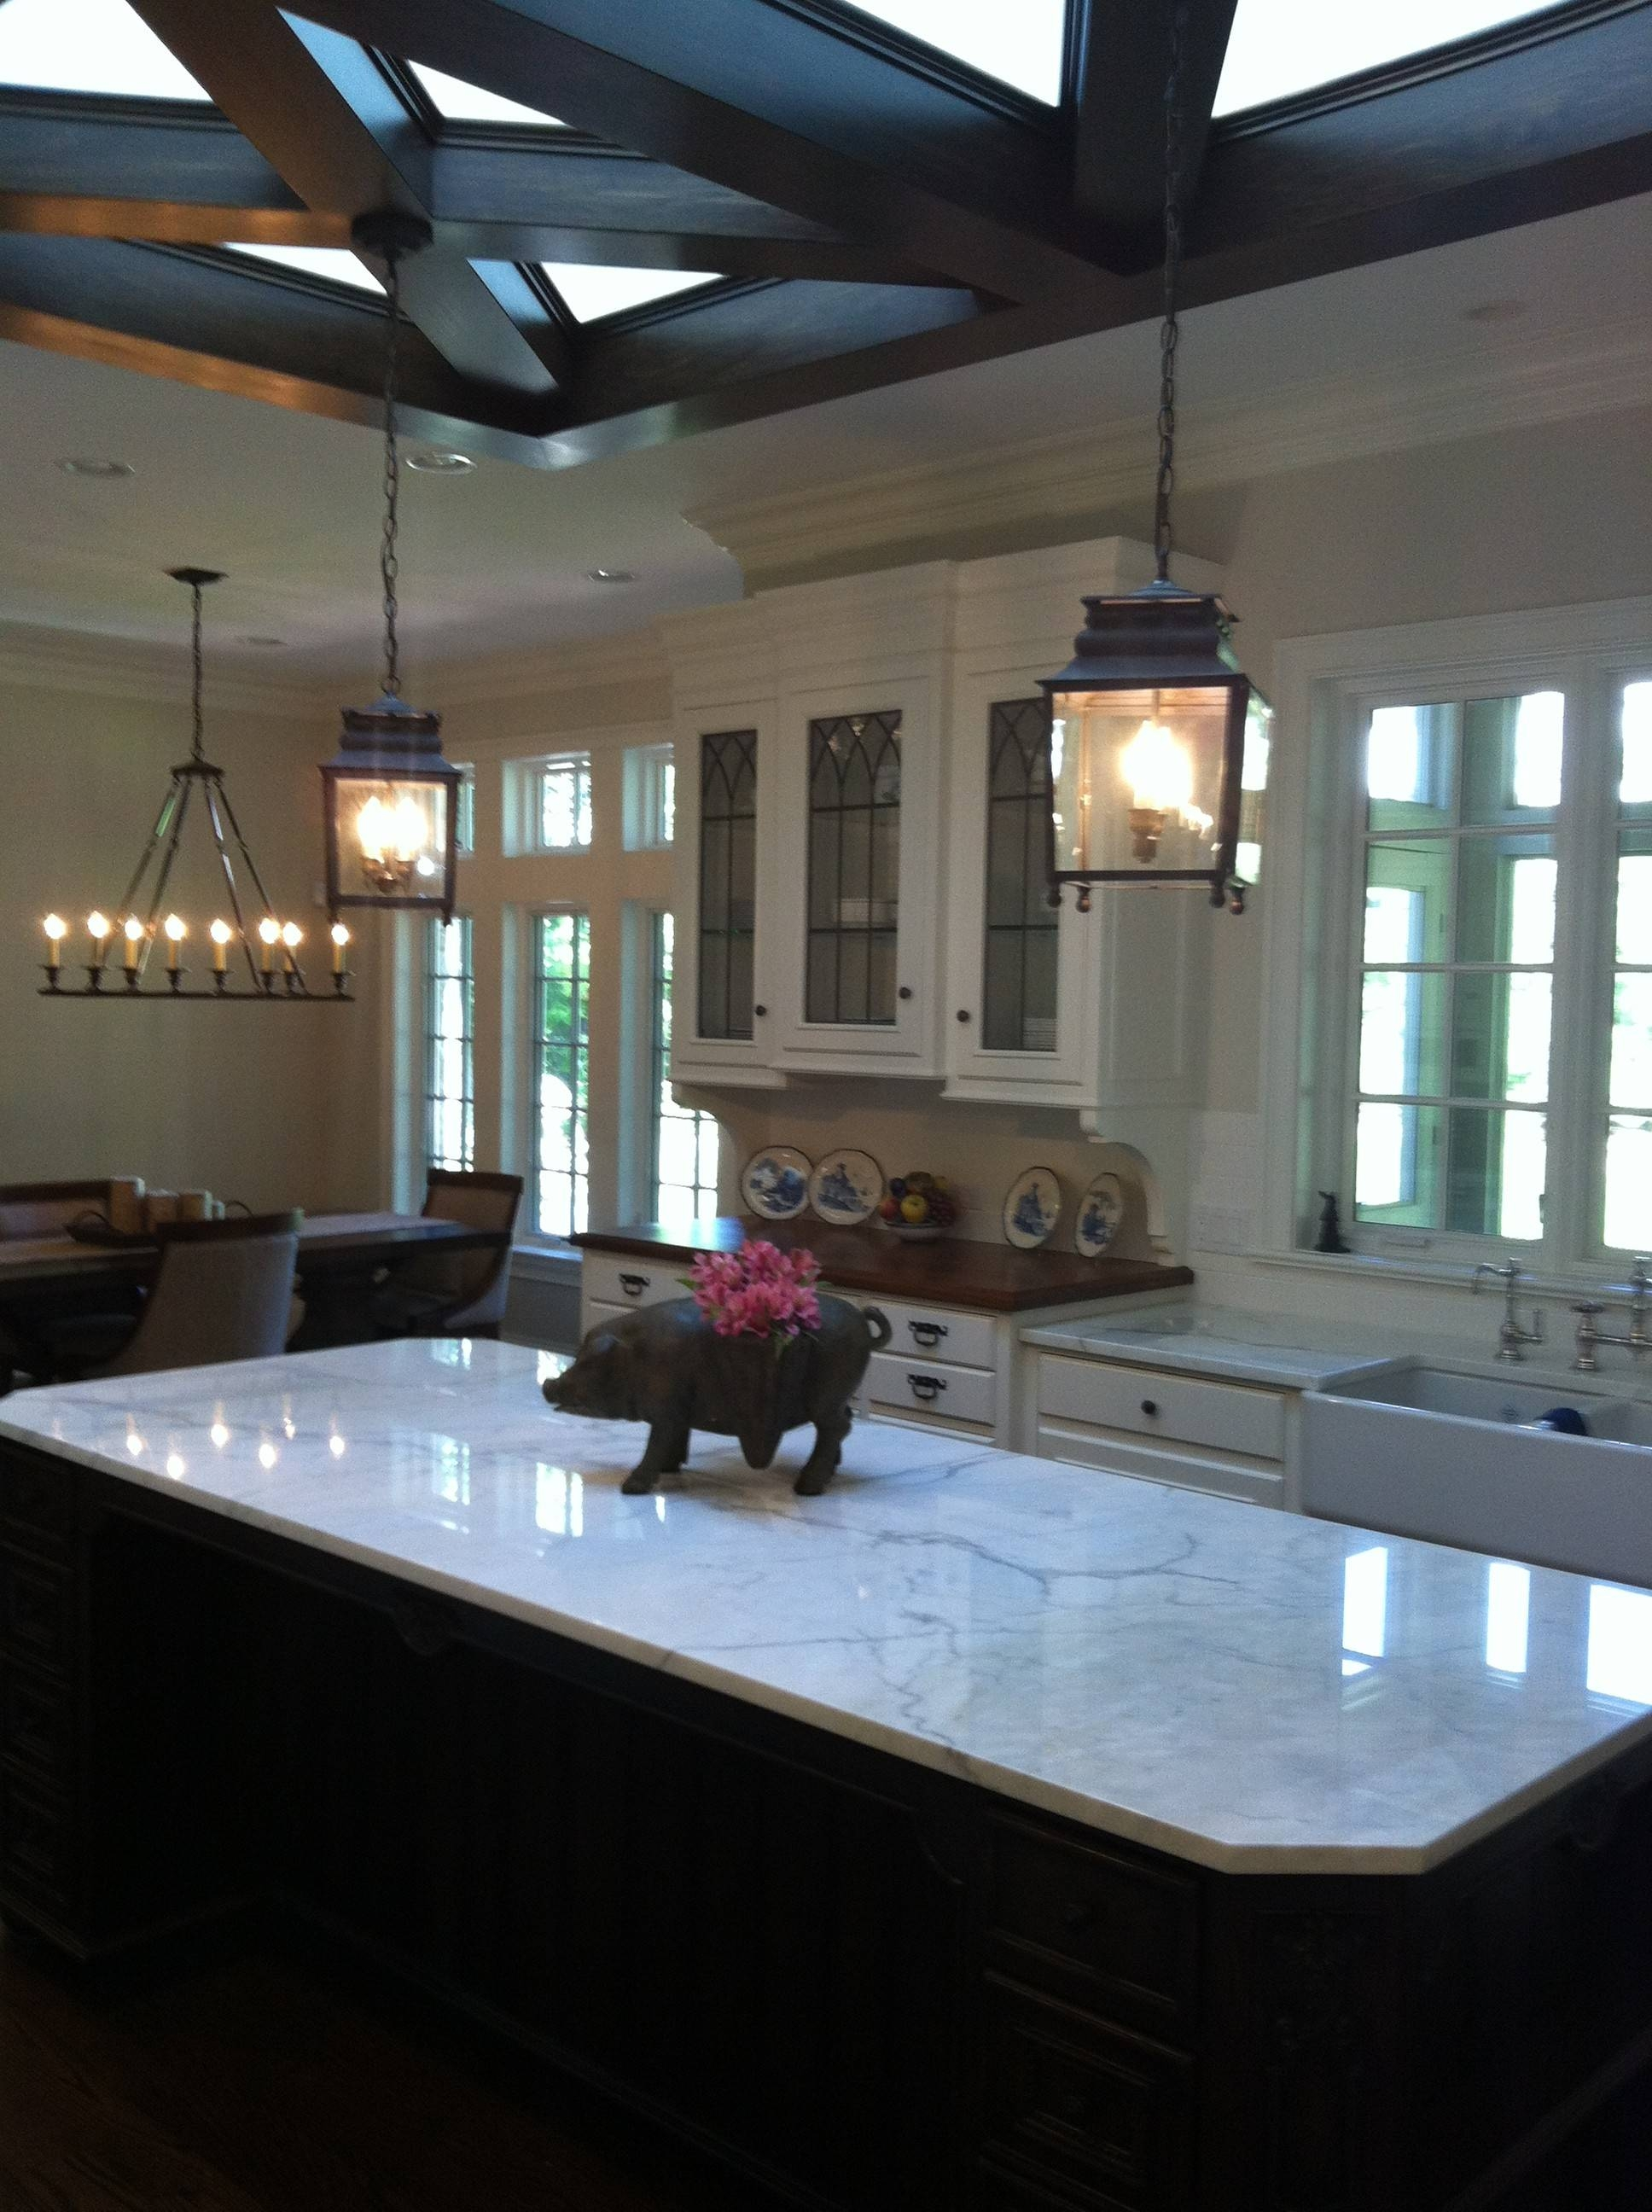 Kitchen : Hornbrook Kitchen With Hanging Copper Pendant Also for Wrought Iron Pendant Lights For Kitchen (Image 9 of 15)